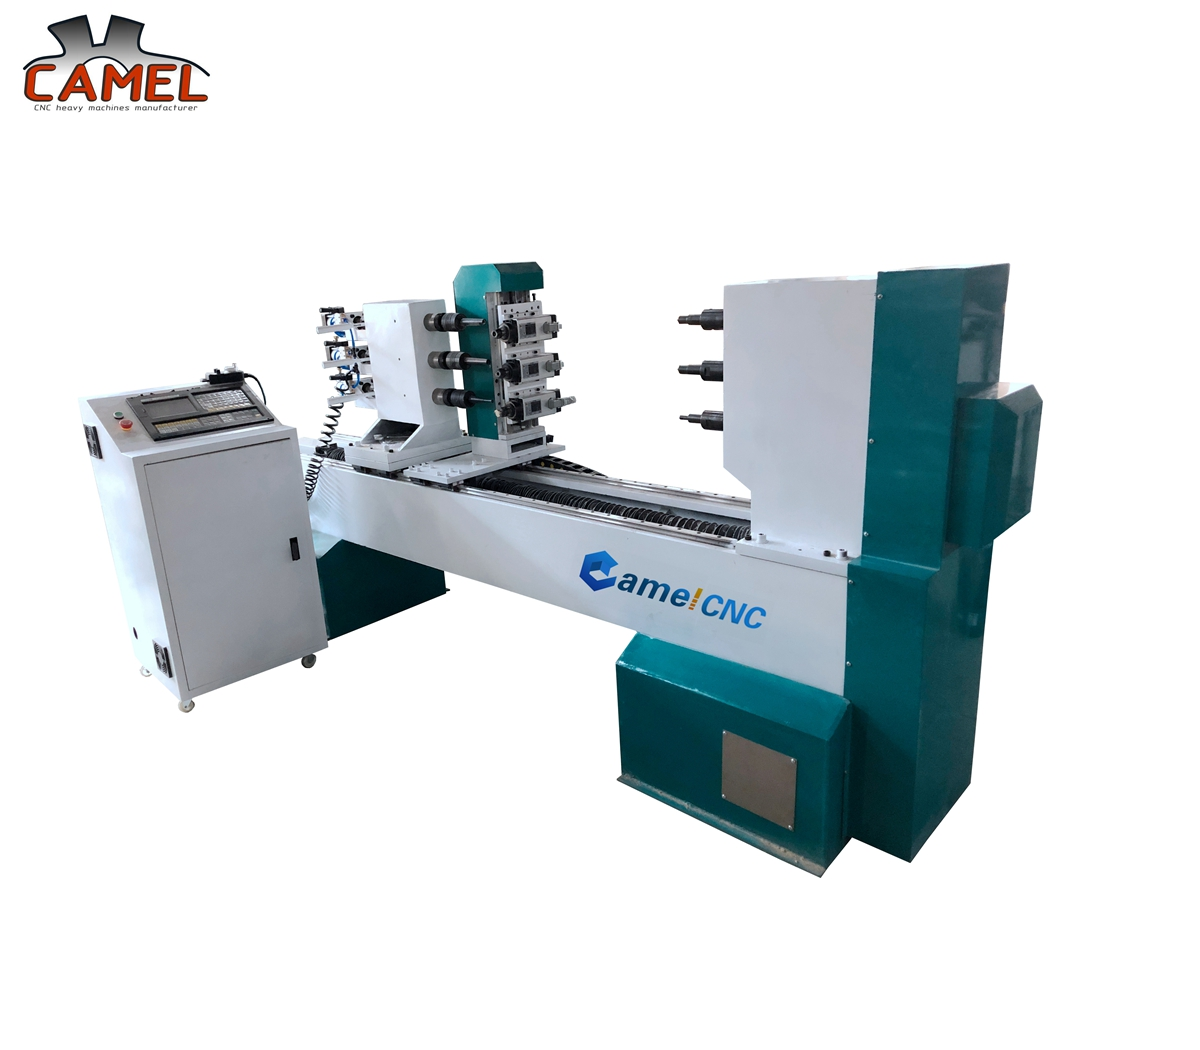 CAMEL CNC factory CA-1512 three axes wooden chair legs stairs cnc turning broaching engraving lathe